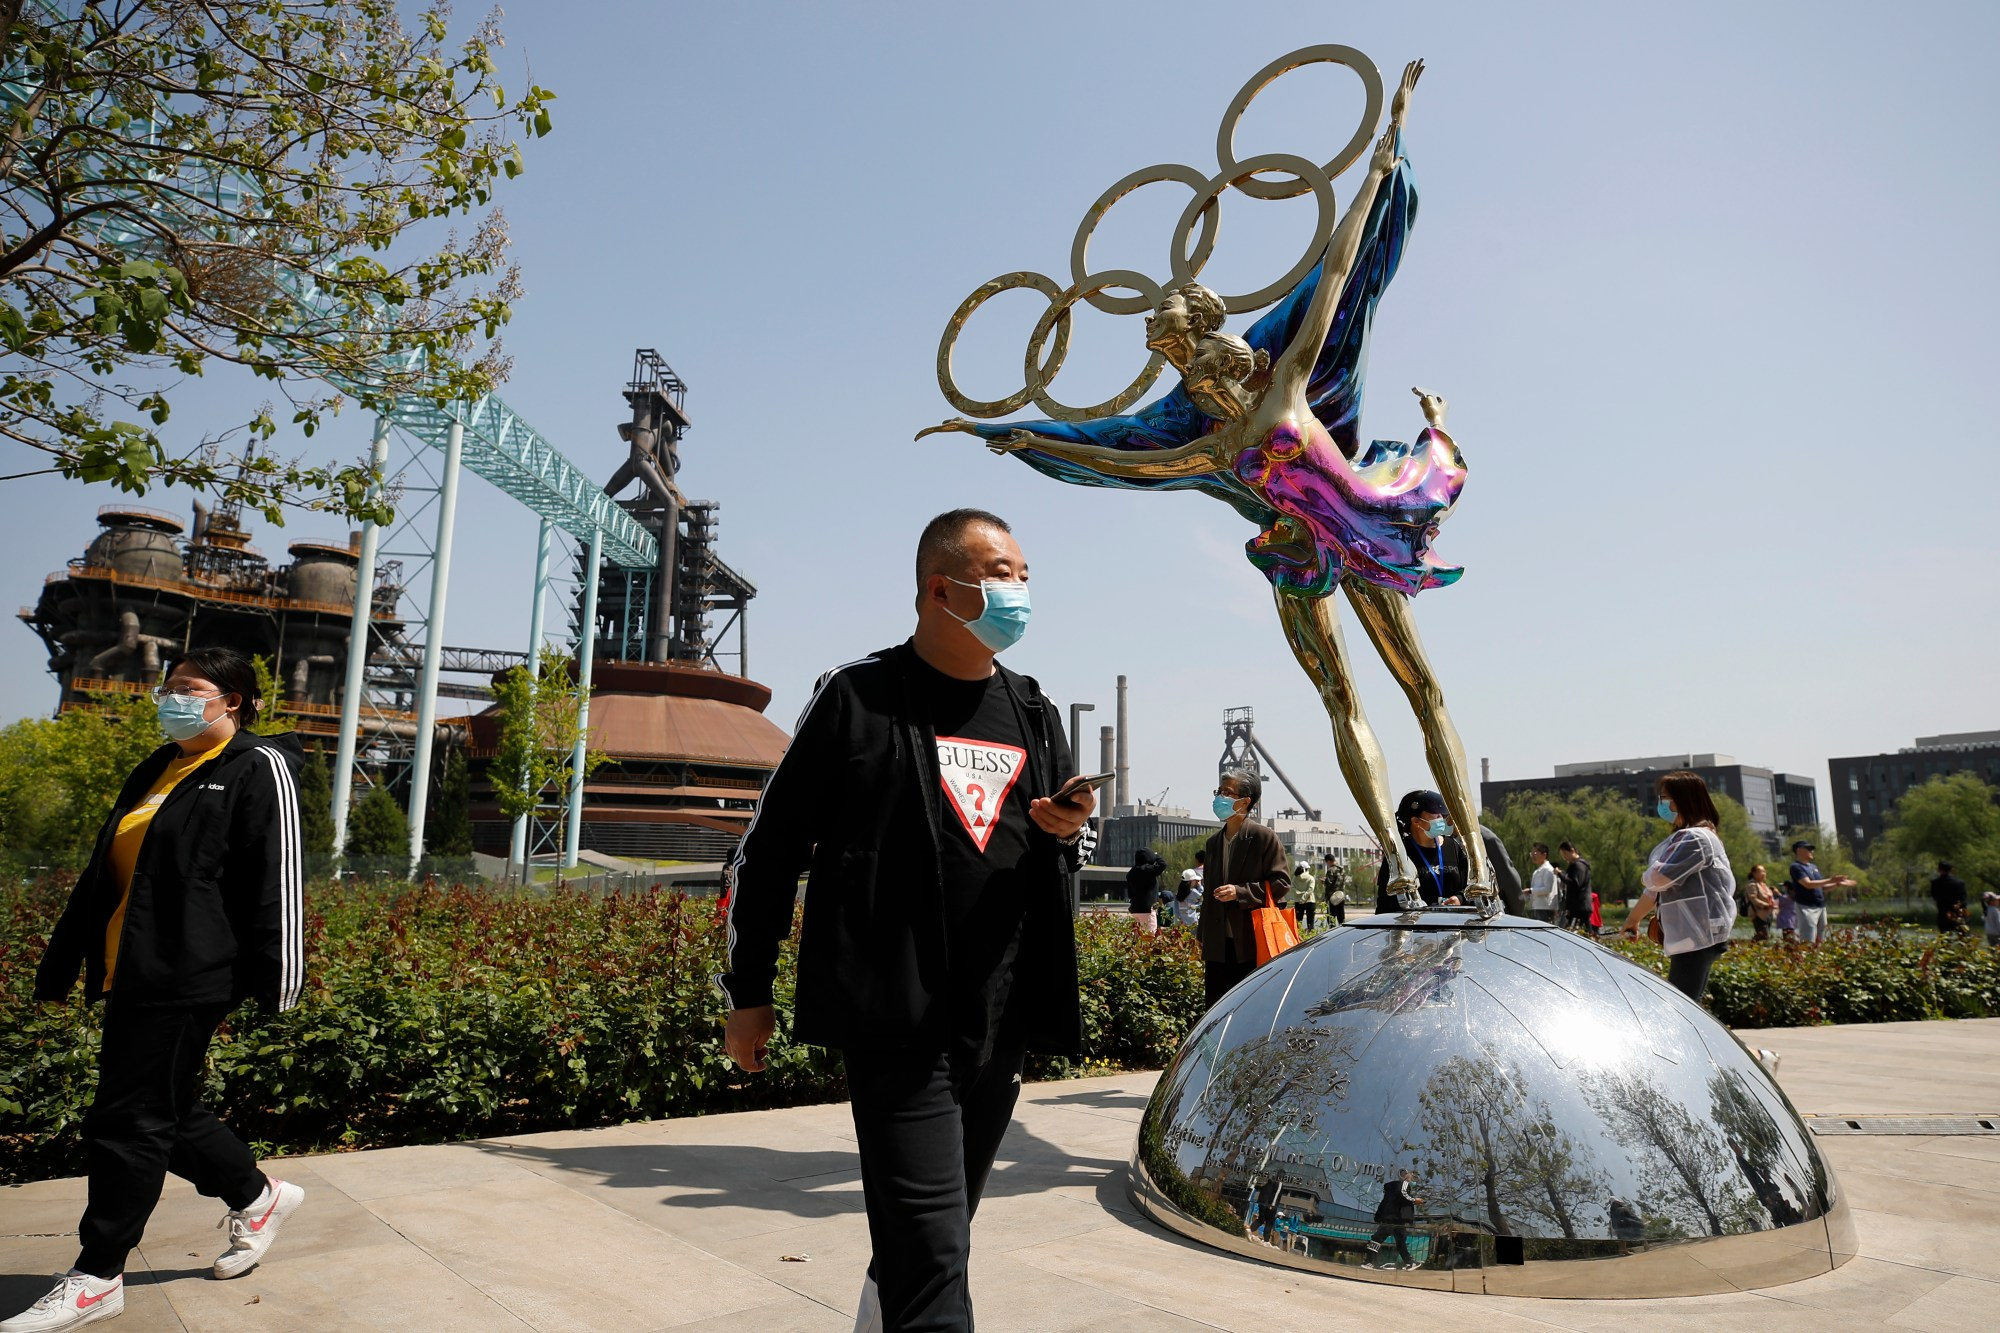 Visitors wearing face masks to help curb the spread of the coronavirus walk by a statue featuring Winter Olympics figure skating on display at the Shougang Park in Beijing, Sunday, May 2, 2021. (AP Photo/Andy Wong)